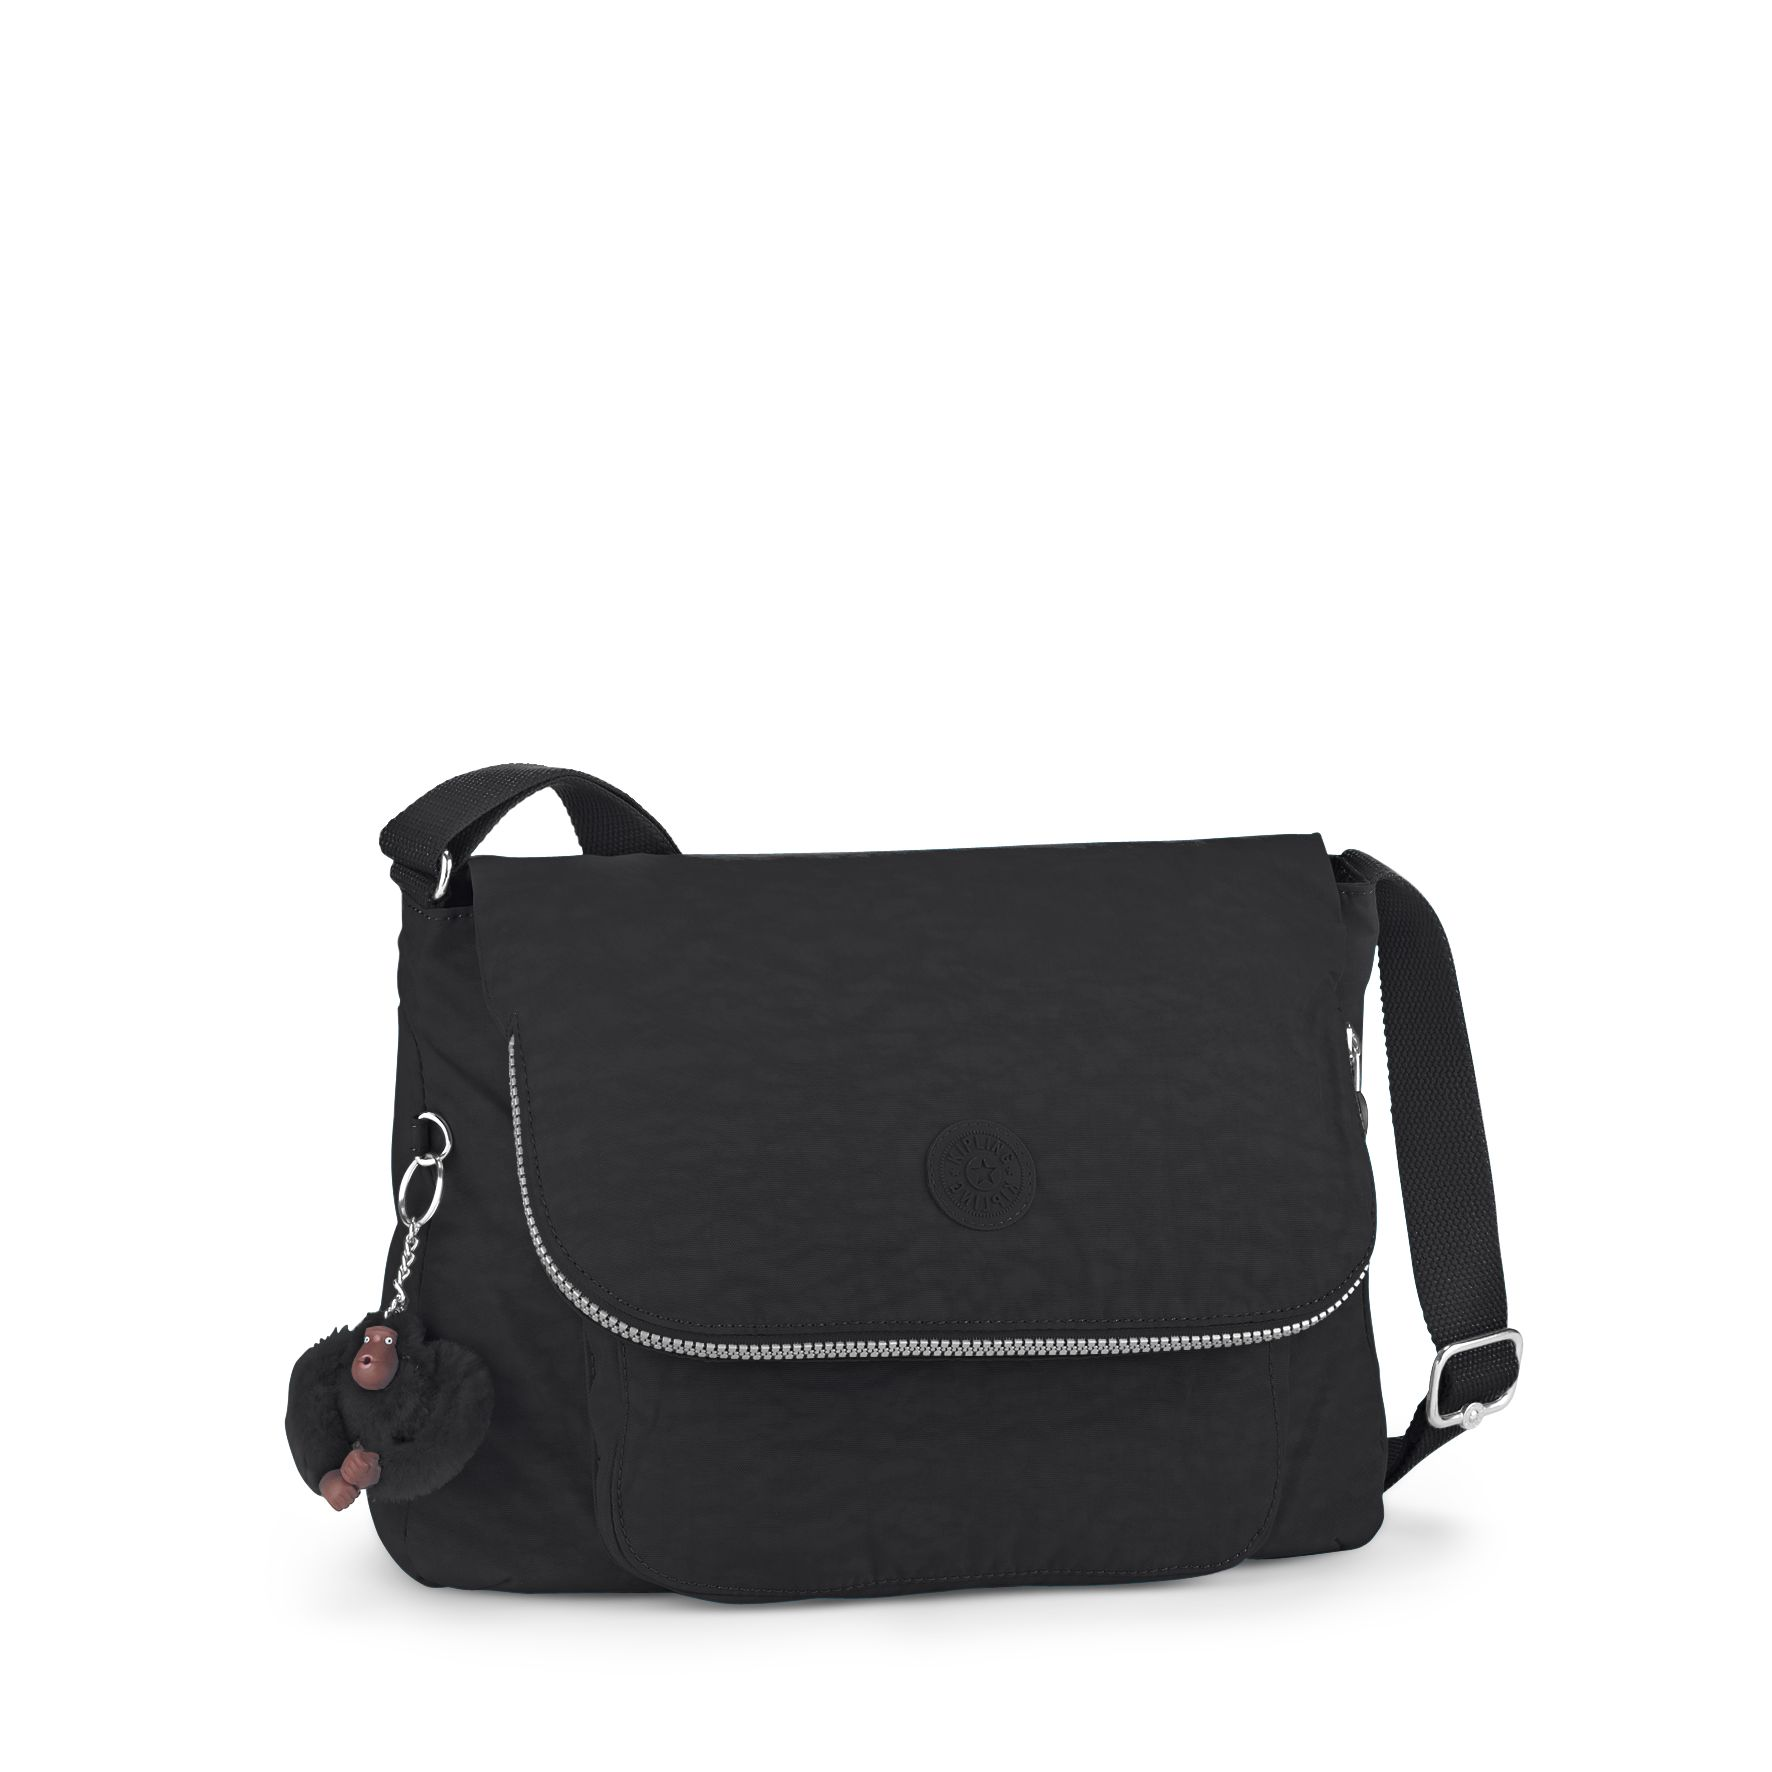 Kipling Garan medium shoulder bag, Black